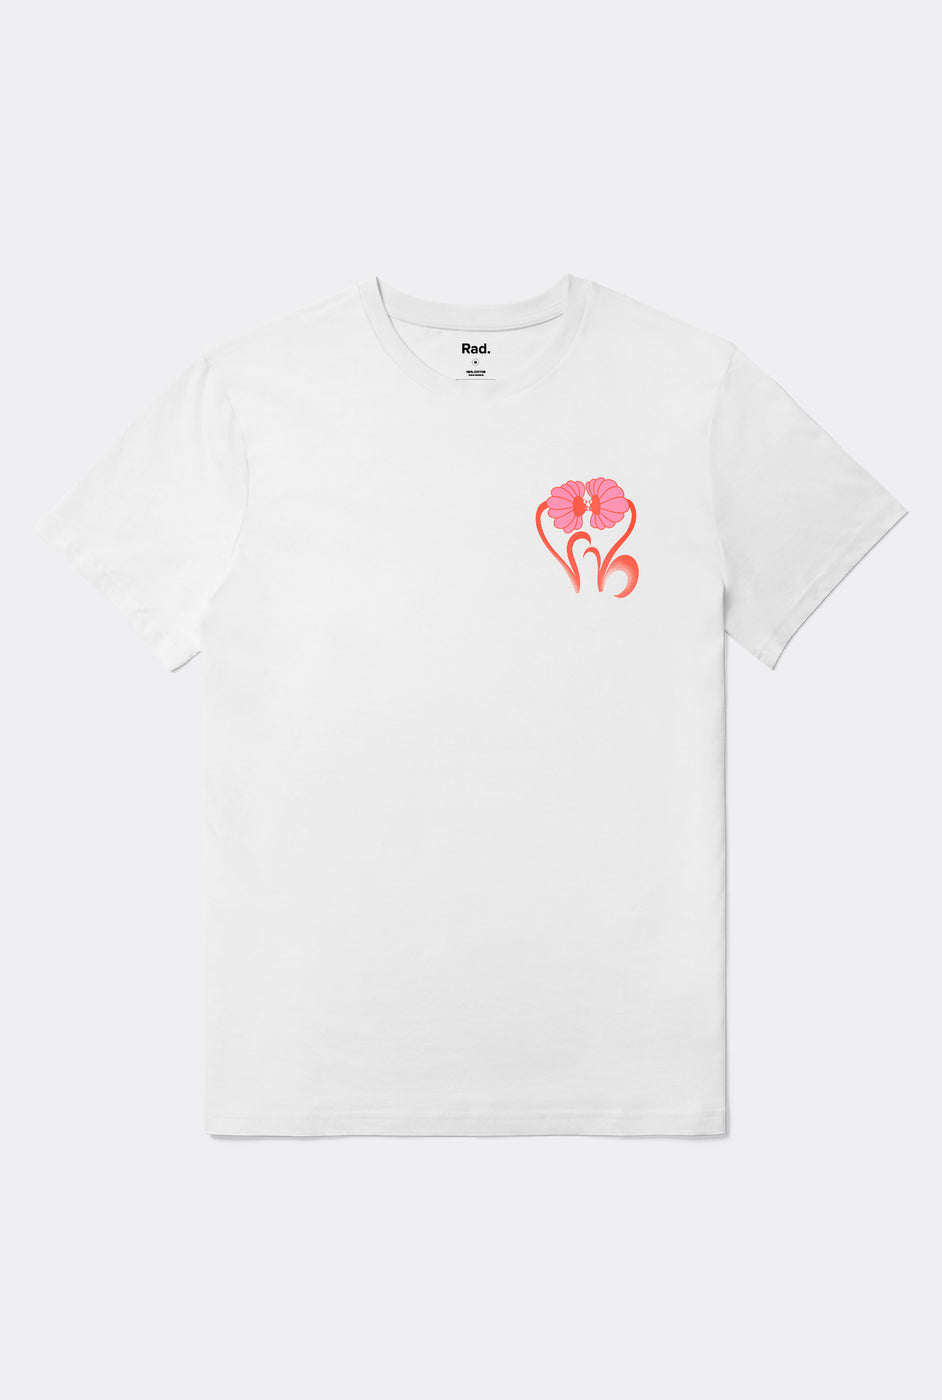 T-Shirt S/S Kissing Flowers